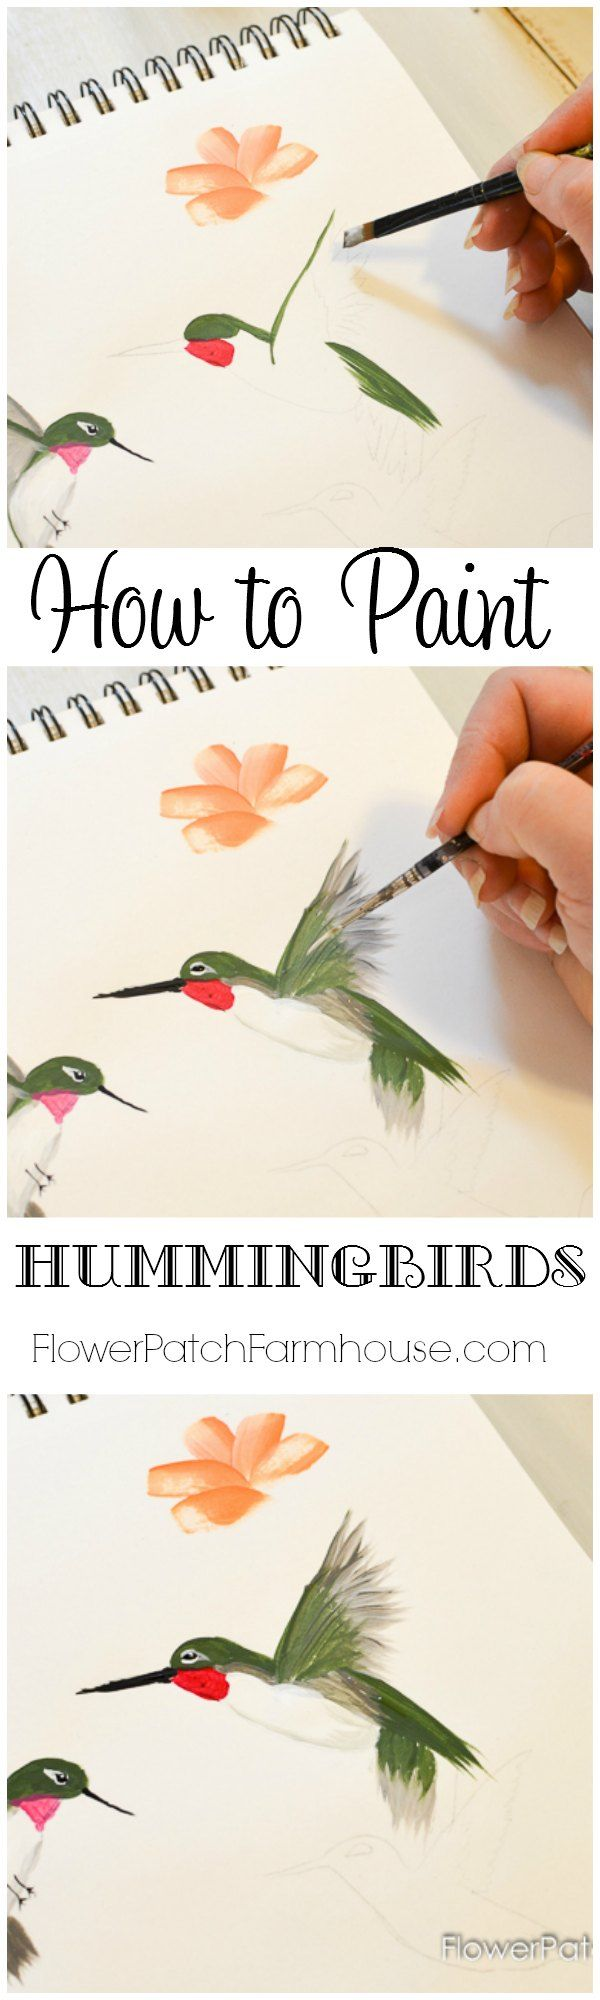 Come learn how to Paint a Hummingbird one stroke at a time. This quick and easy tutorial will have you painting beautiful hummingbirds in no time and it is so much fun! FlowerPatchFarmhouse.com